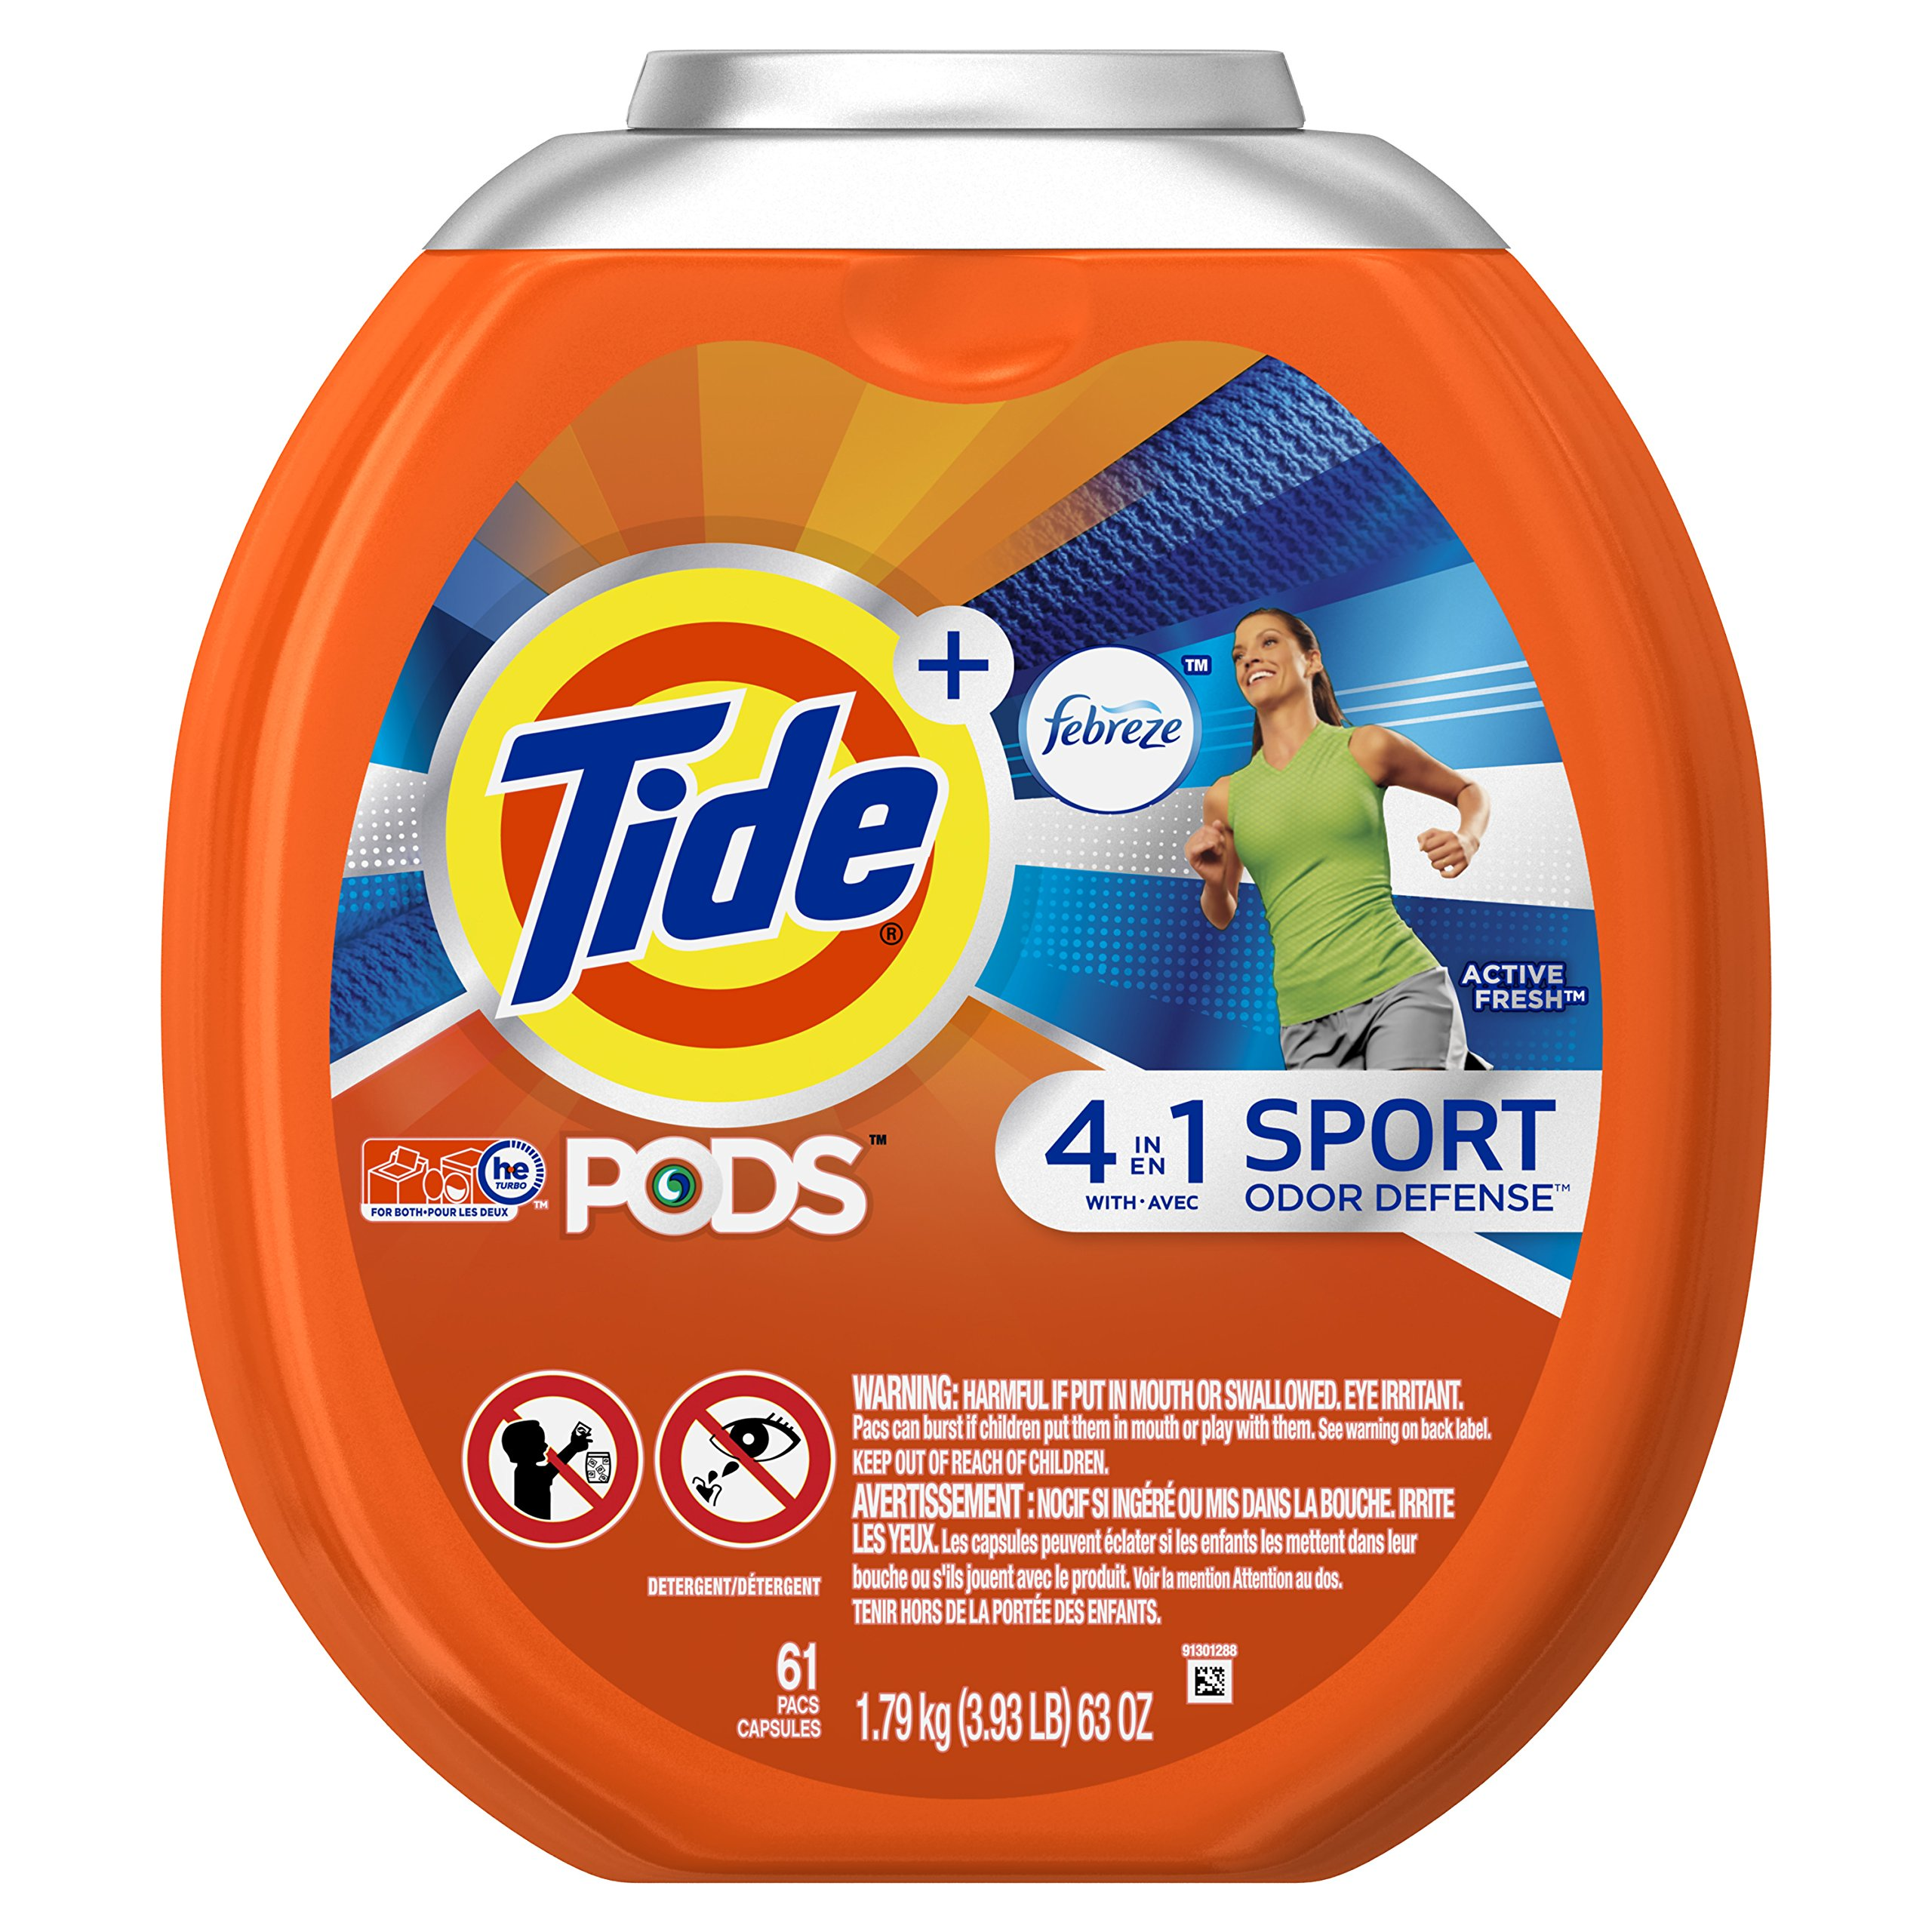 Tide PODS Plus Febreze Sport Odor Defense 4 in 1 HE Turbo Laundry Detergent Pacs,